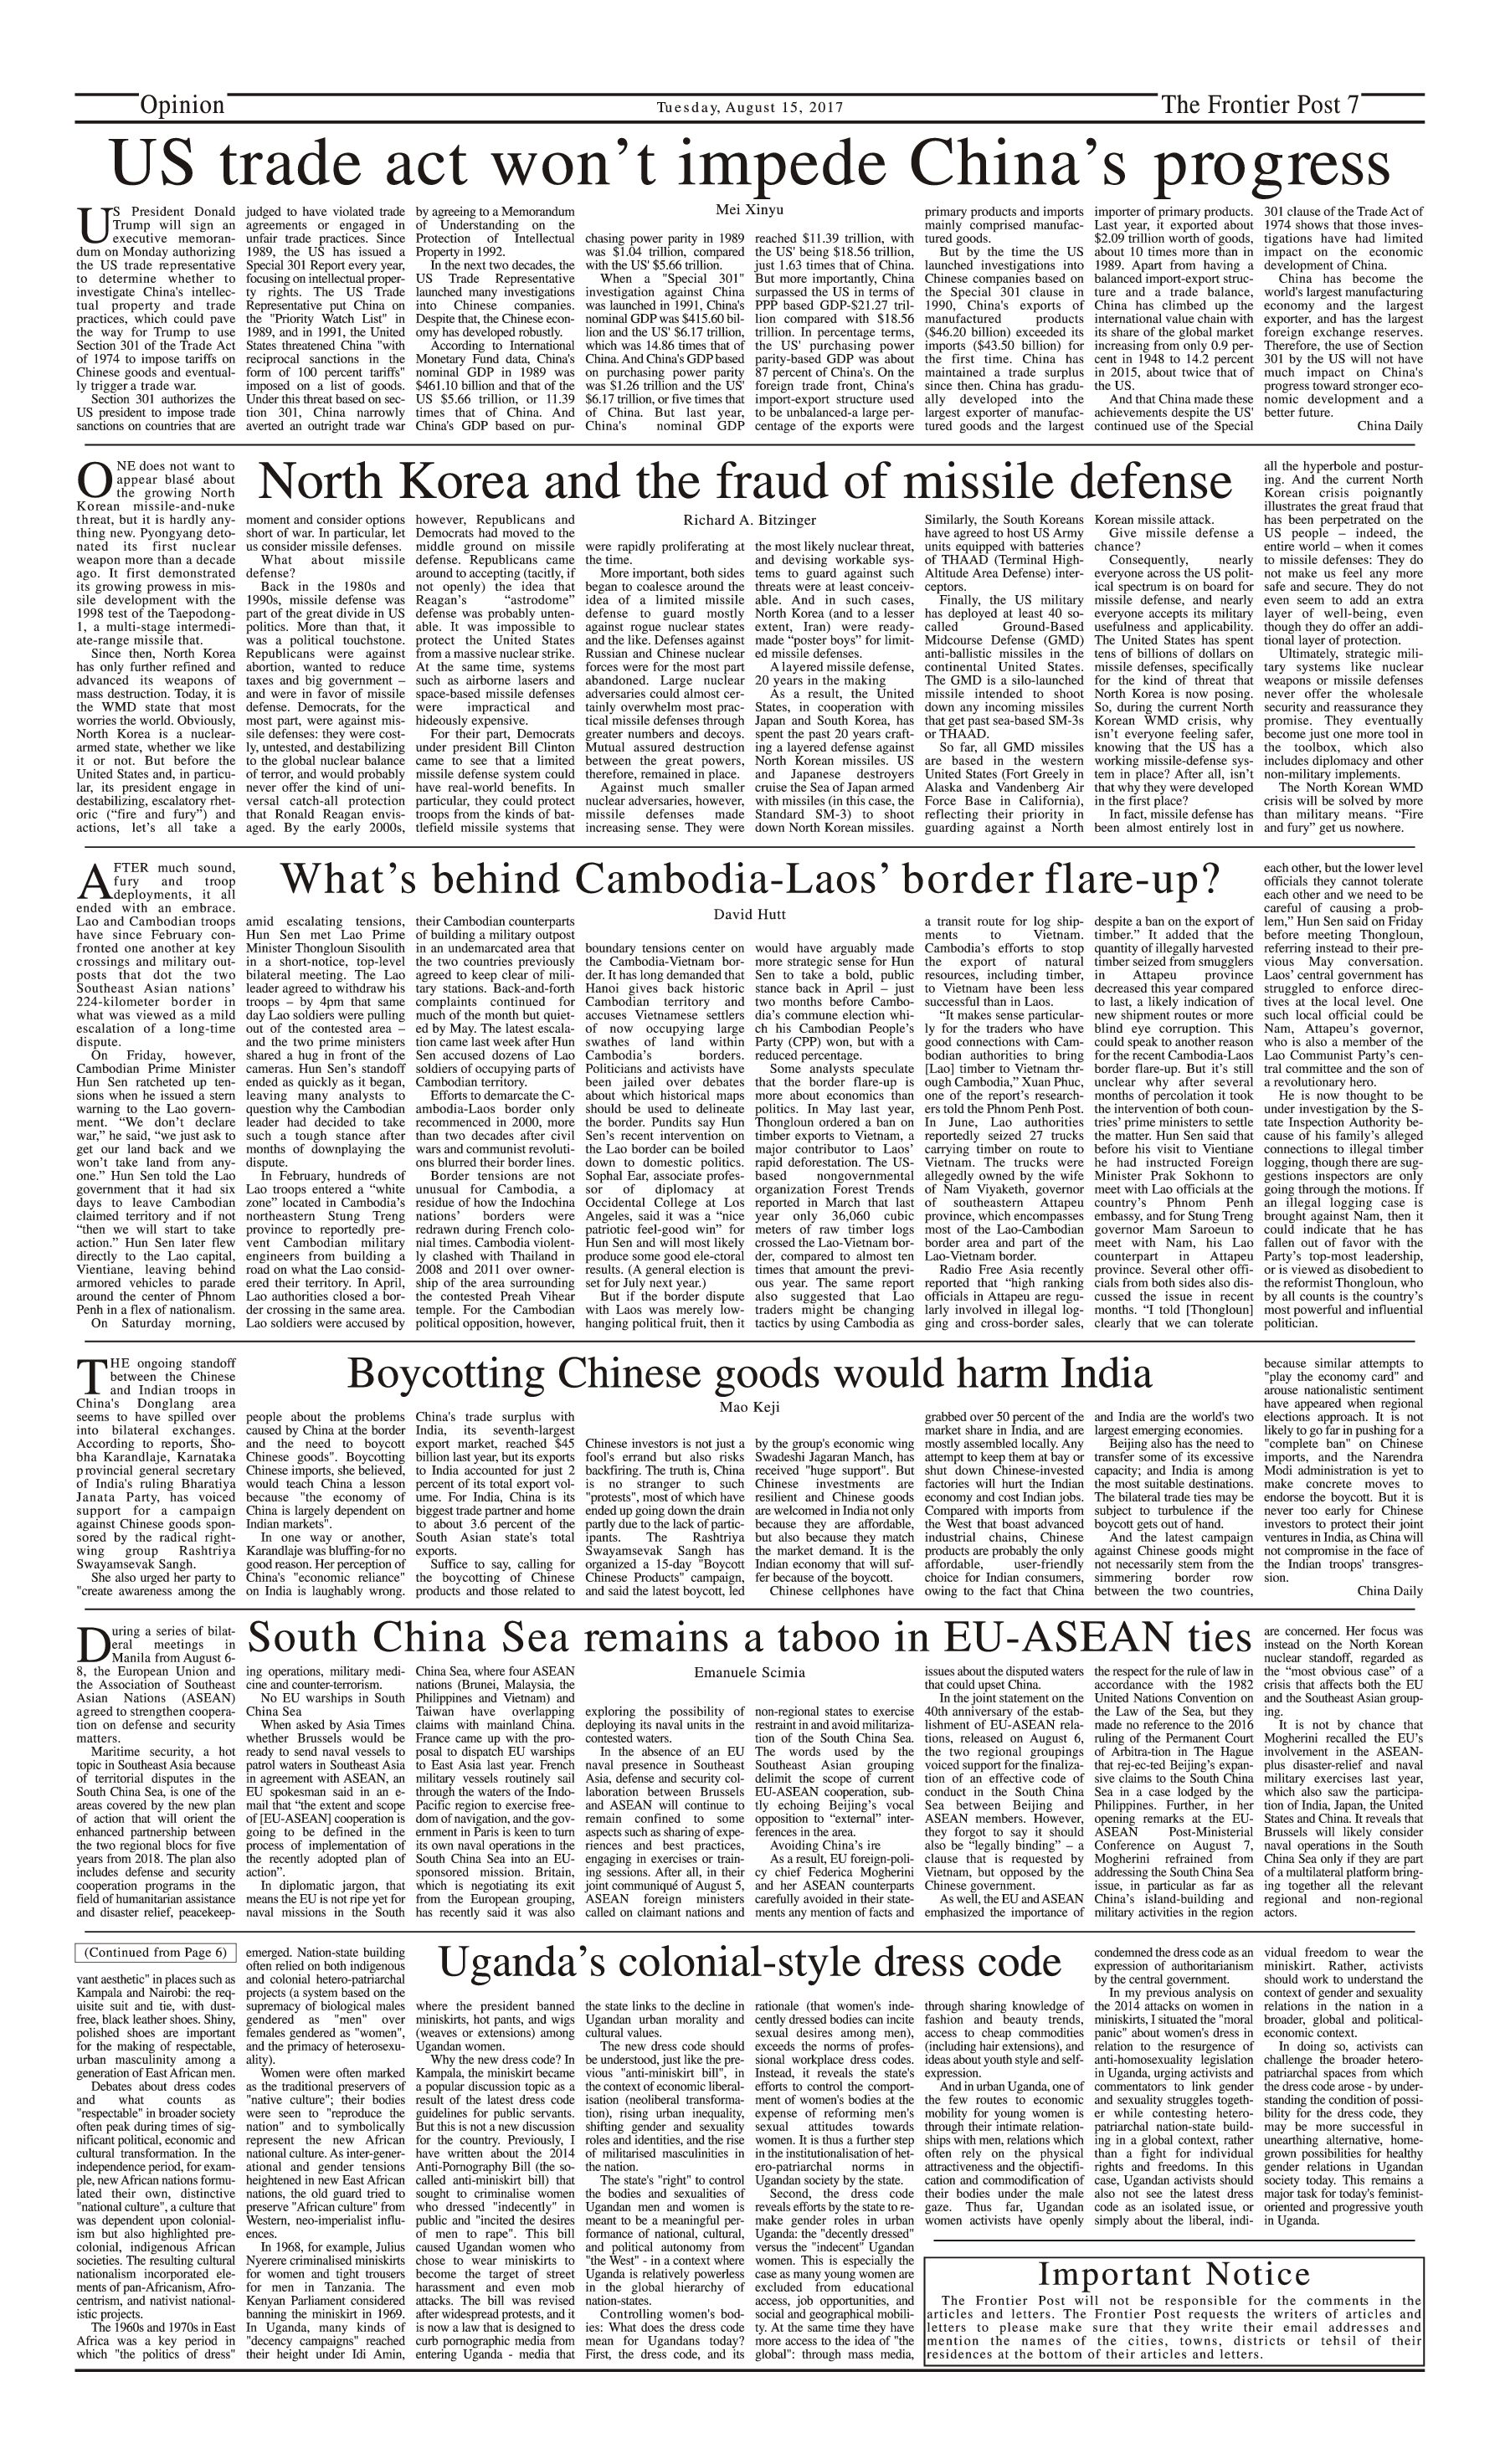 Opinion Page 15